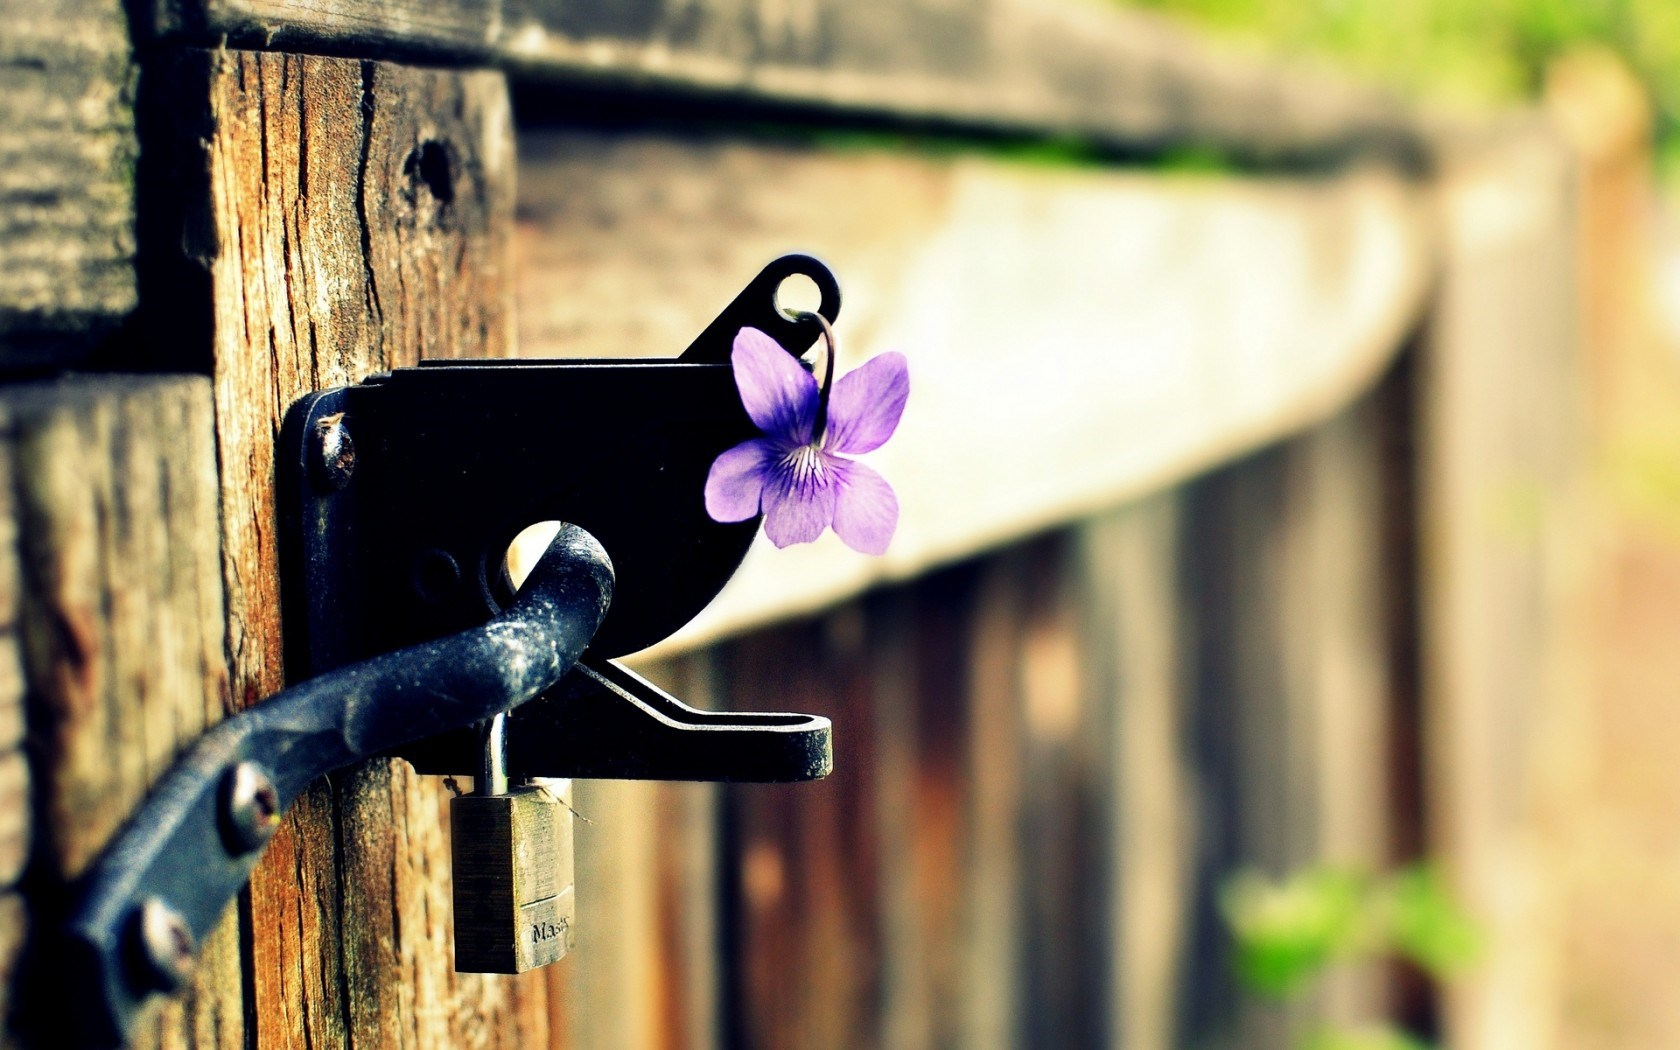 Fence Gate Lock Flower Purple